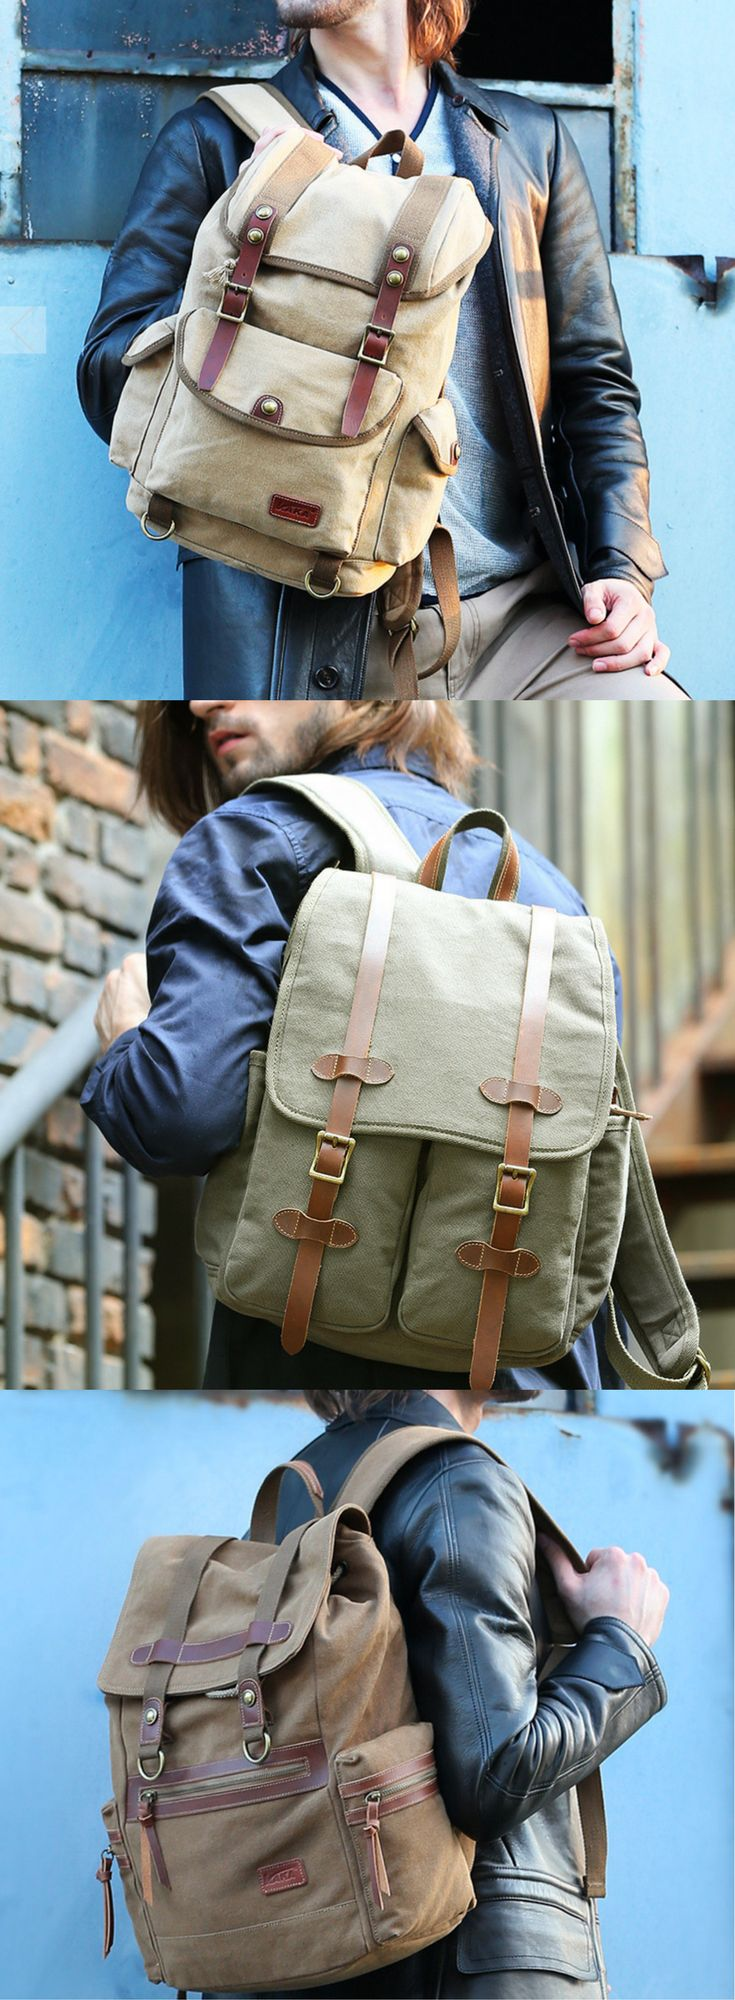 canvas and leather,backpack,waxed,backpack,waxed canvas,duffle bag,canvas rucksack,canvas laptop bag,rucksack,laptop bag,vintage backpack,canvas backpack,leather backpack,waxed canvas bag,,Bags & Purses, Backpacks, Canvas backpack men, hipster backpack, mens backpack, canvas rucksack, laptop bag, school backpack, navy blue,green,grey,black,beige,tan,outdoor backpack, travel backpack,Canvas Duffel Bag, Mens Duffle Bag, Waxed Duffel, Leather Duffle, Duffle Bag Men, Men Duffel Bag,Luggage…